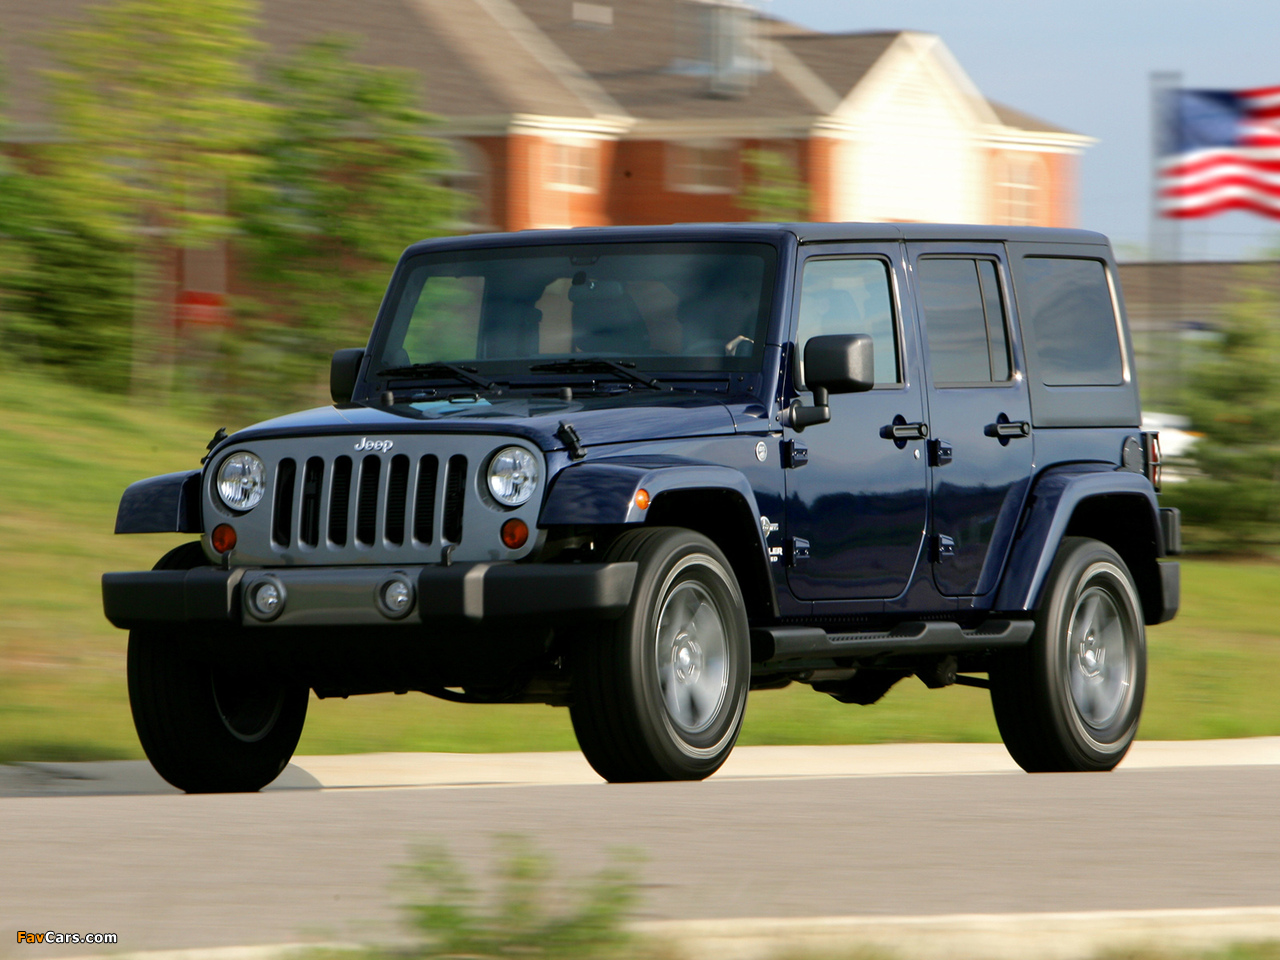 Jeep Wrangler Unlimited Freedom (JK) 2012 wallpapers (1280 x 960)